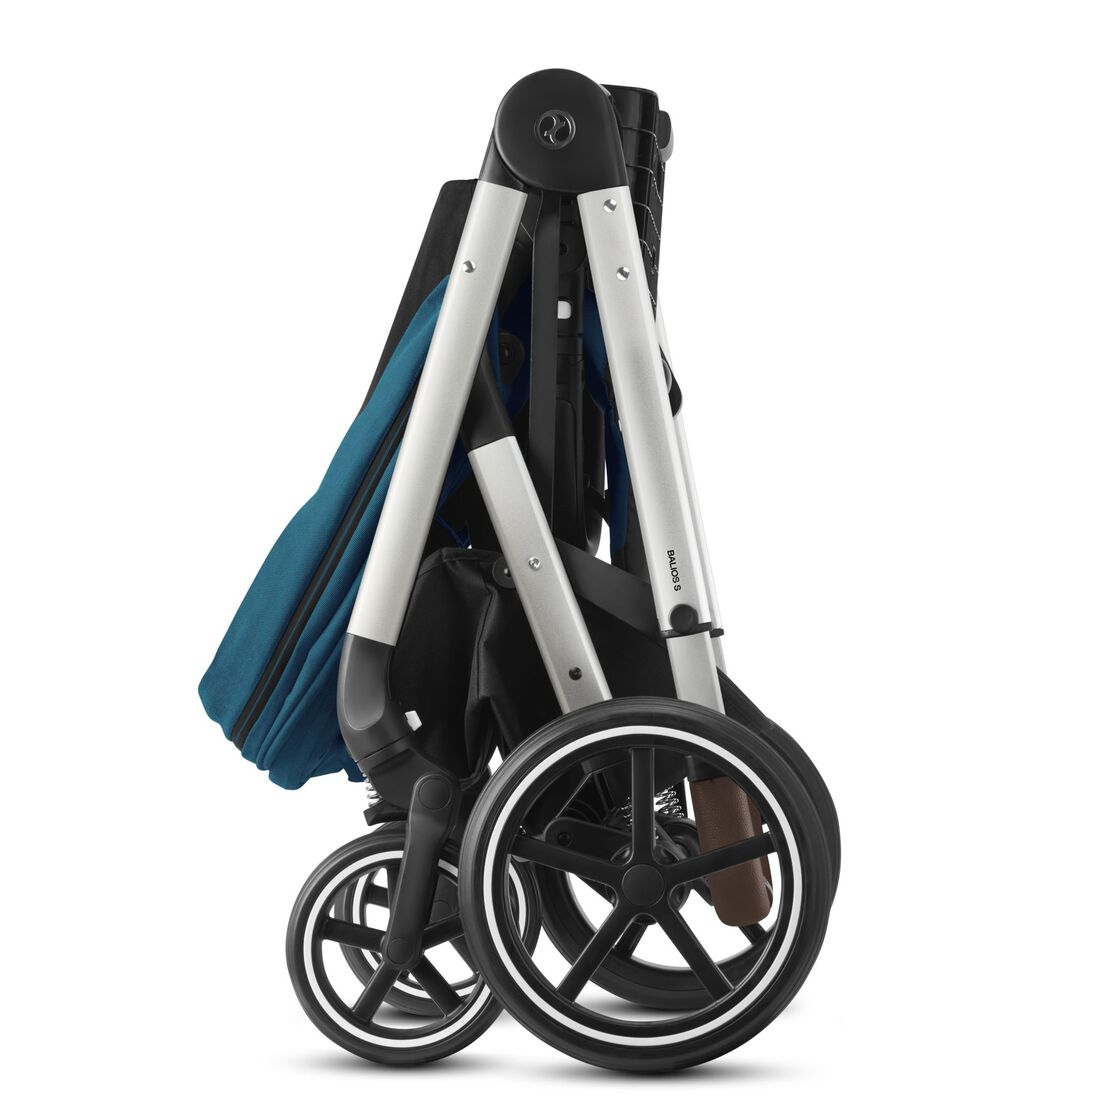 CYBEX Balios S Lux - River Blue (Silver Frame) in River Blue (Silver Frame) large image number 7